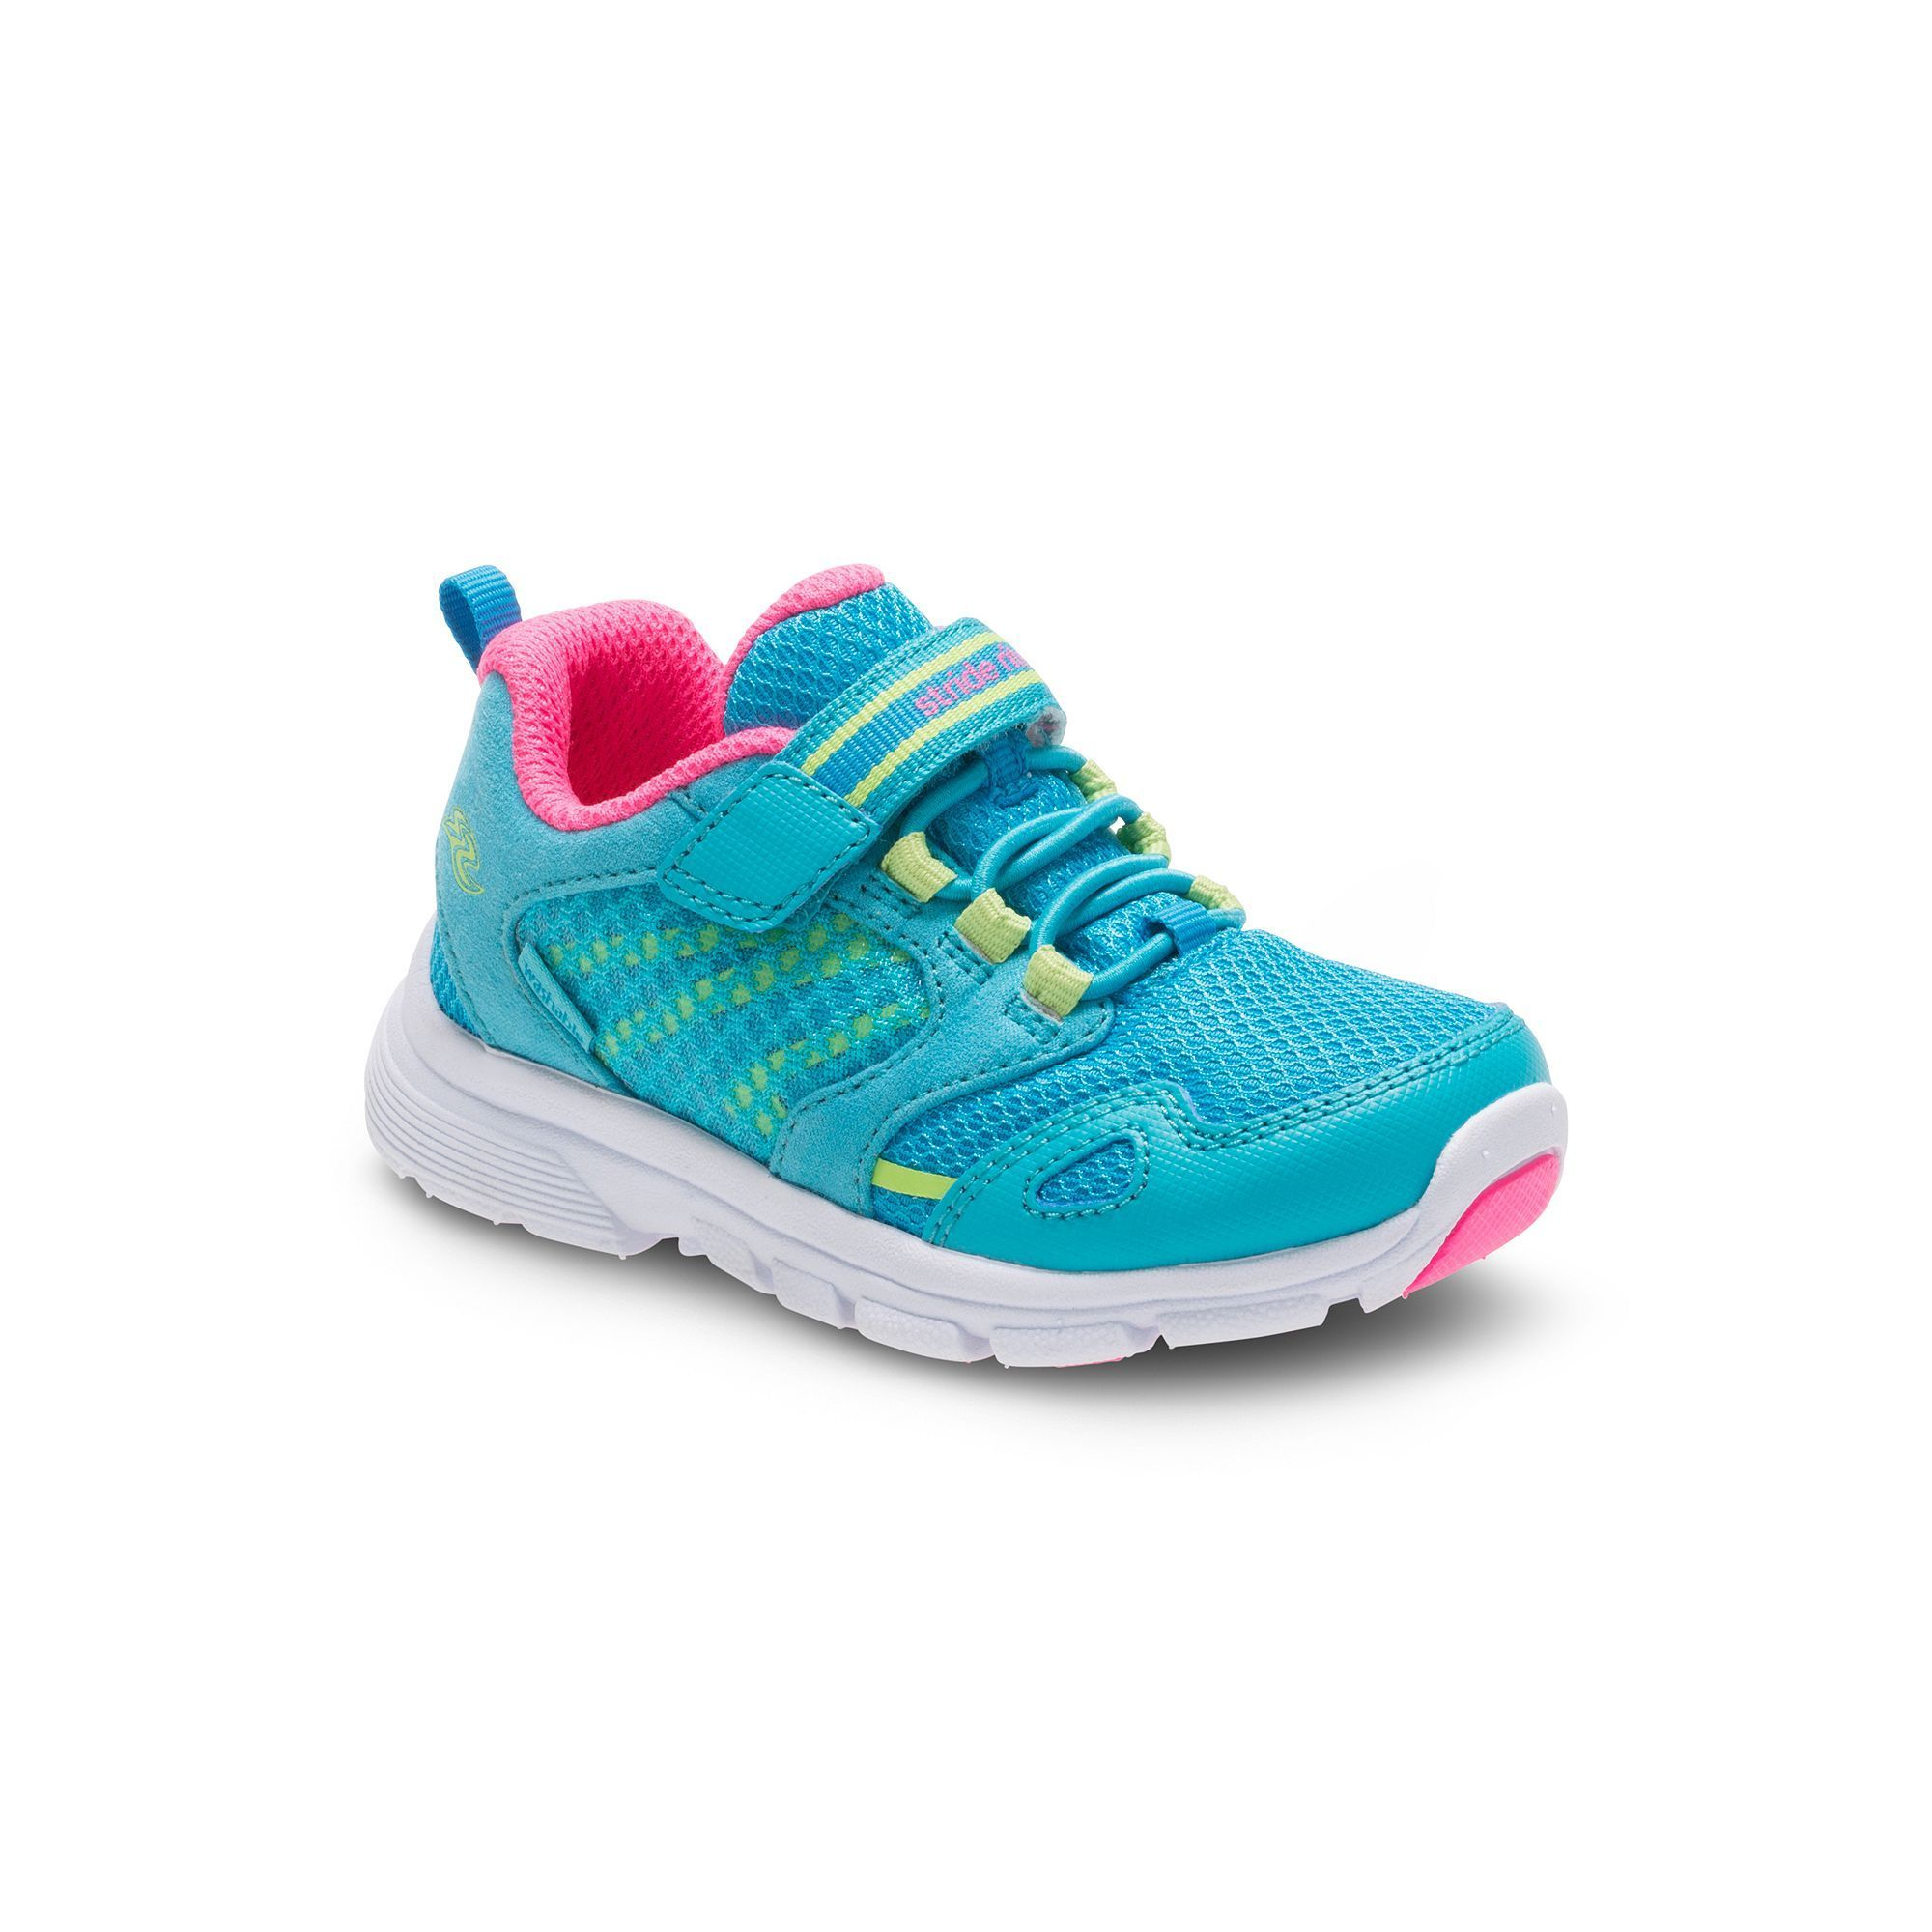 2106e7cf5fe0ad nike shoes for girls size 5 turquoise